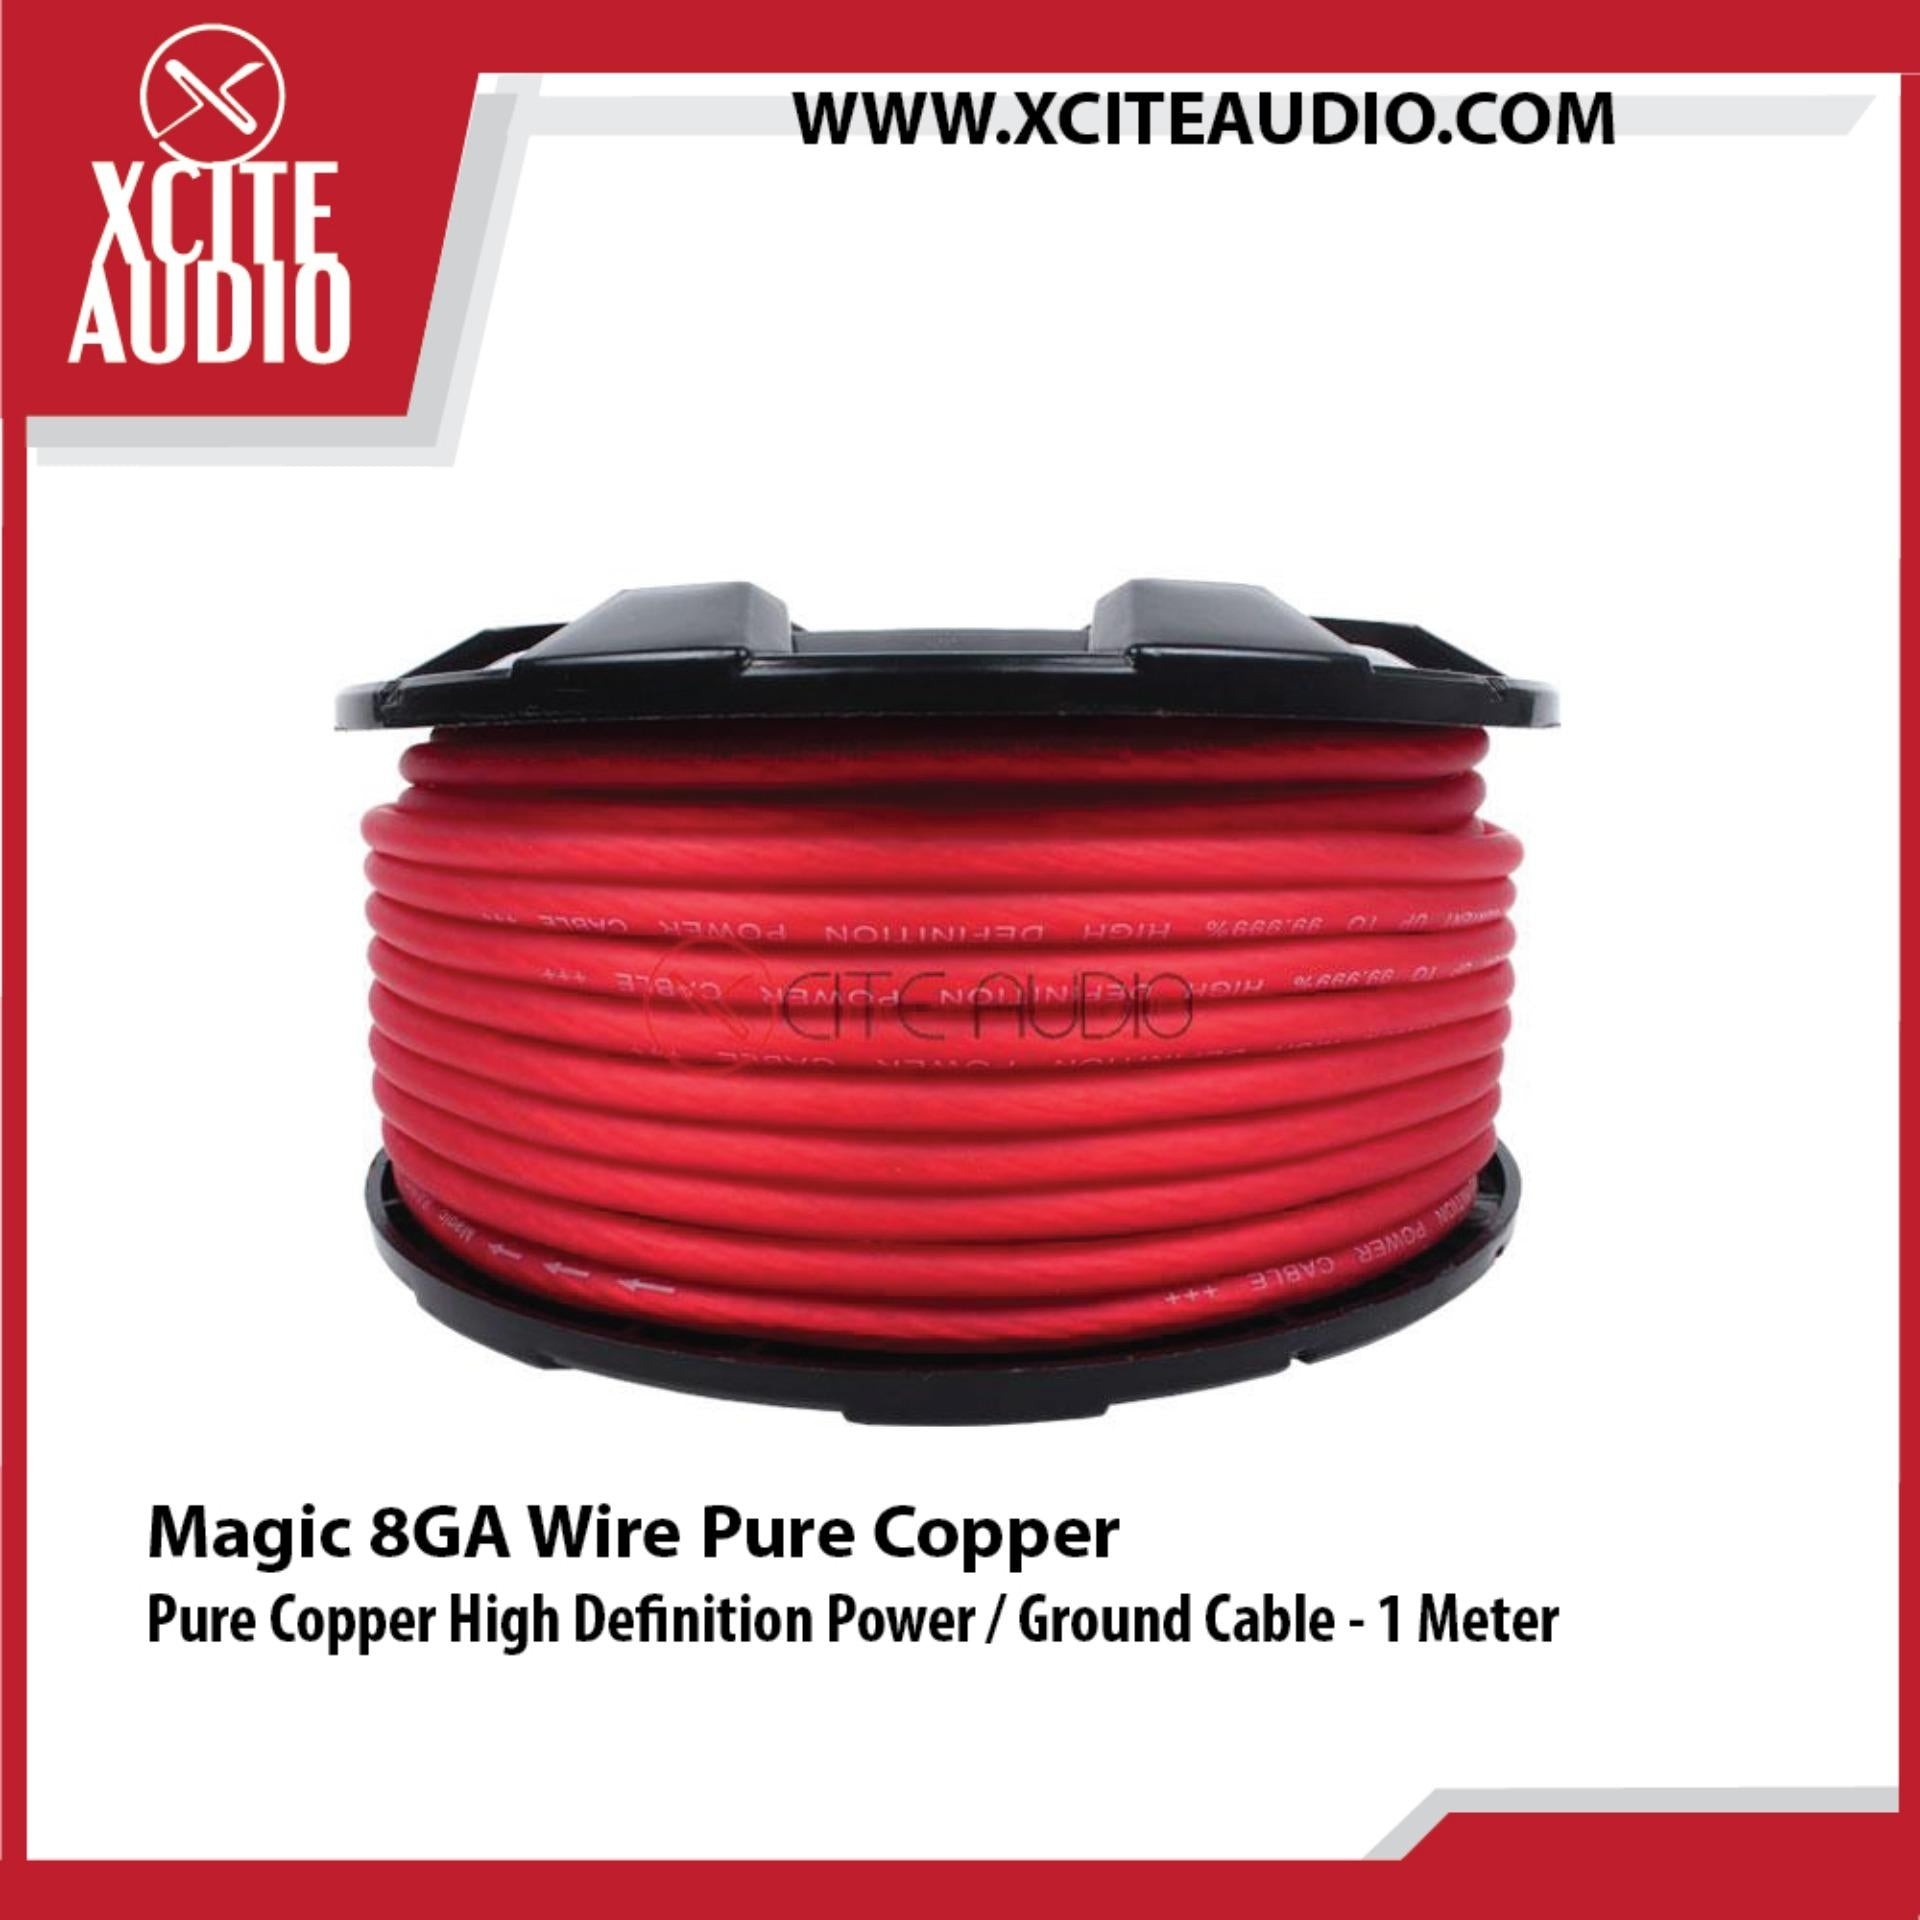 Magic 8GA Wire Pure Copper High Definition Power / Ground Cable - 1 Meter